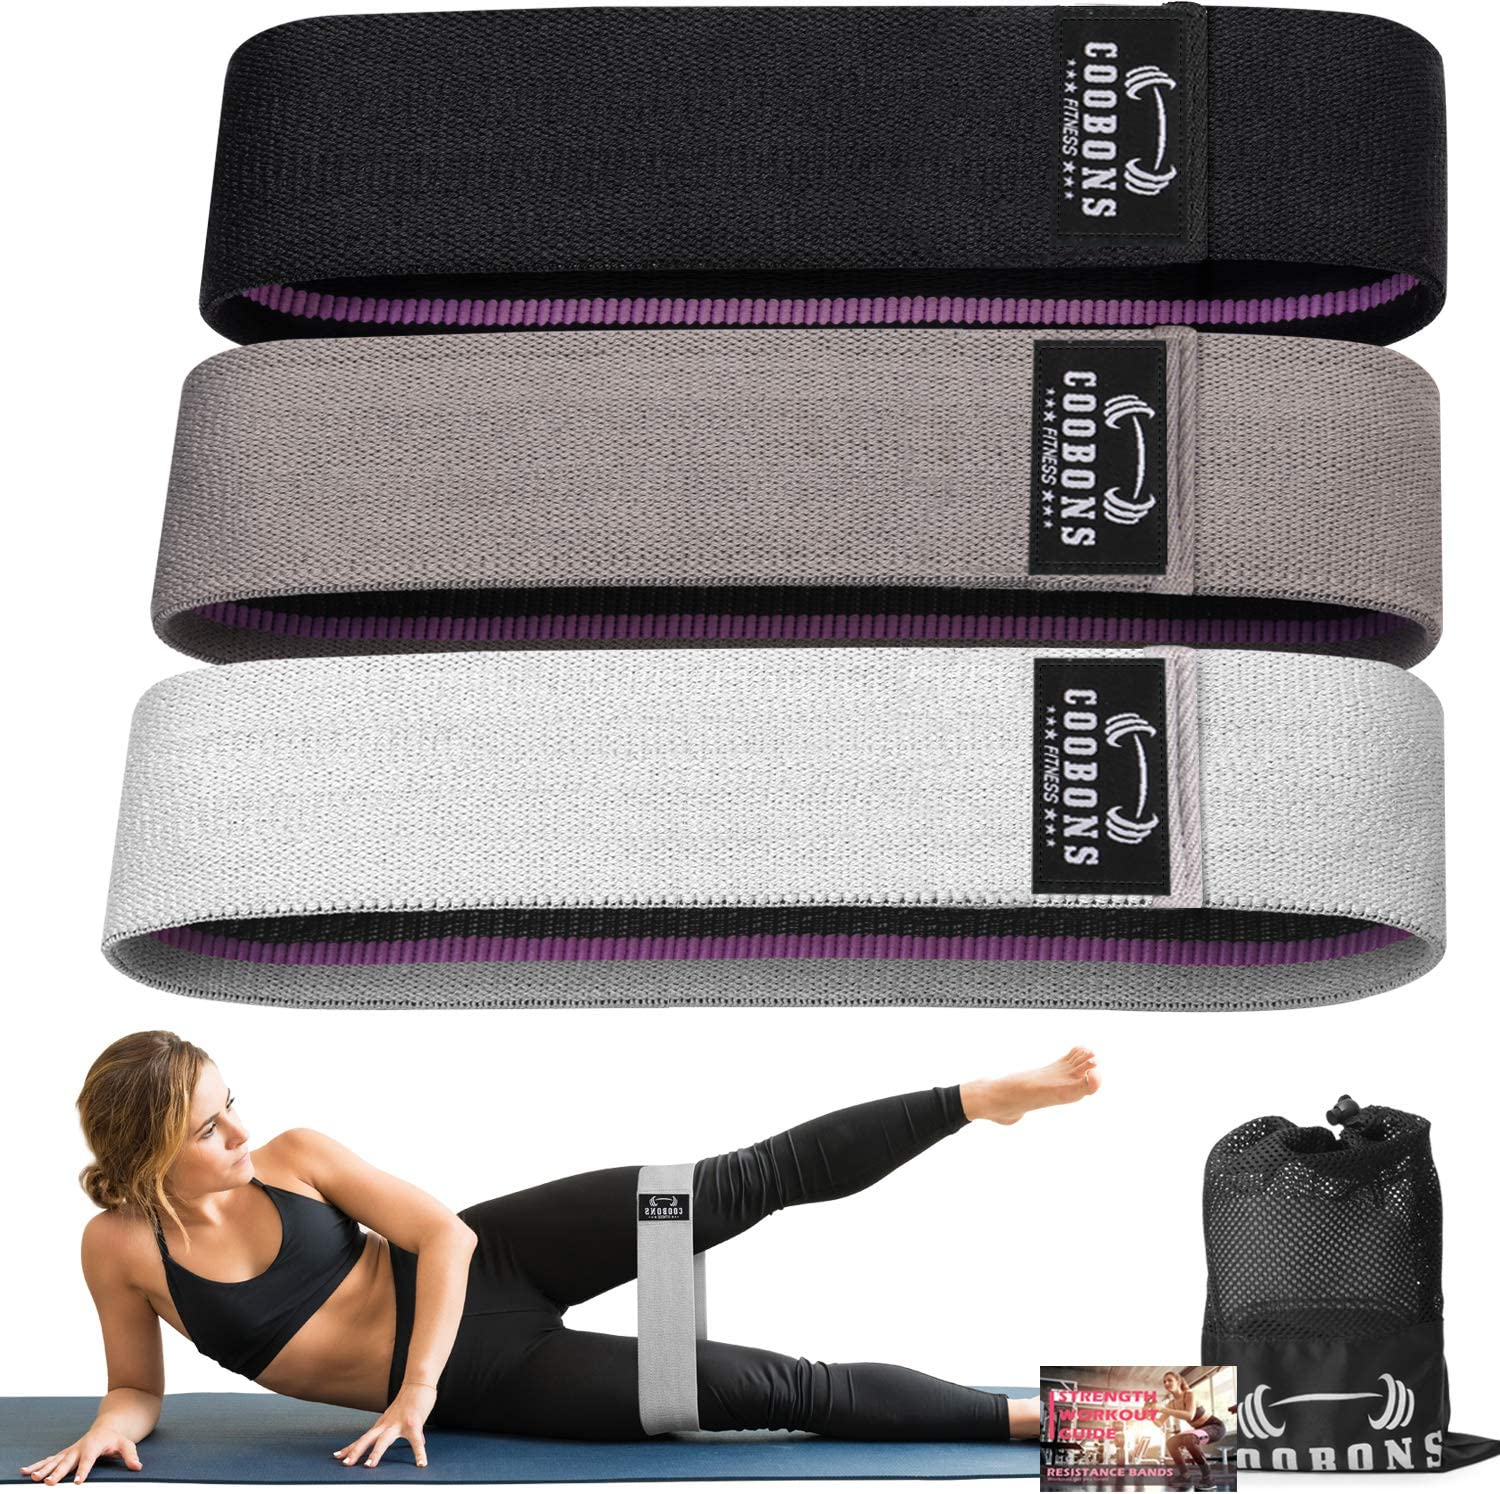 3 Levels Fabric Workout Bands Exercise Band Resistance Bands for Legs and Butt